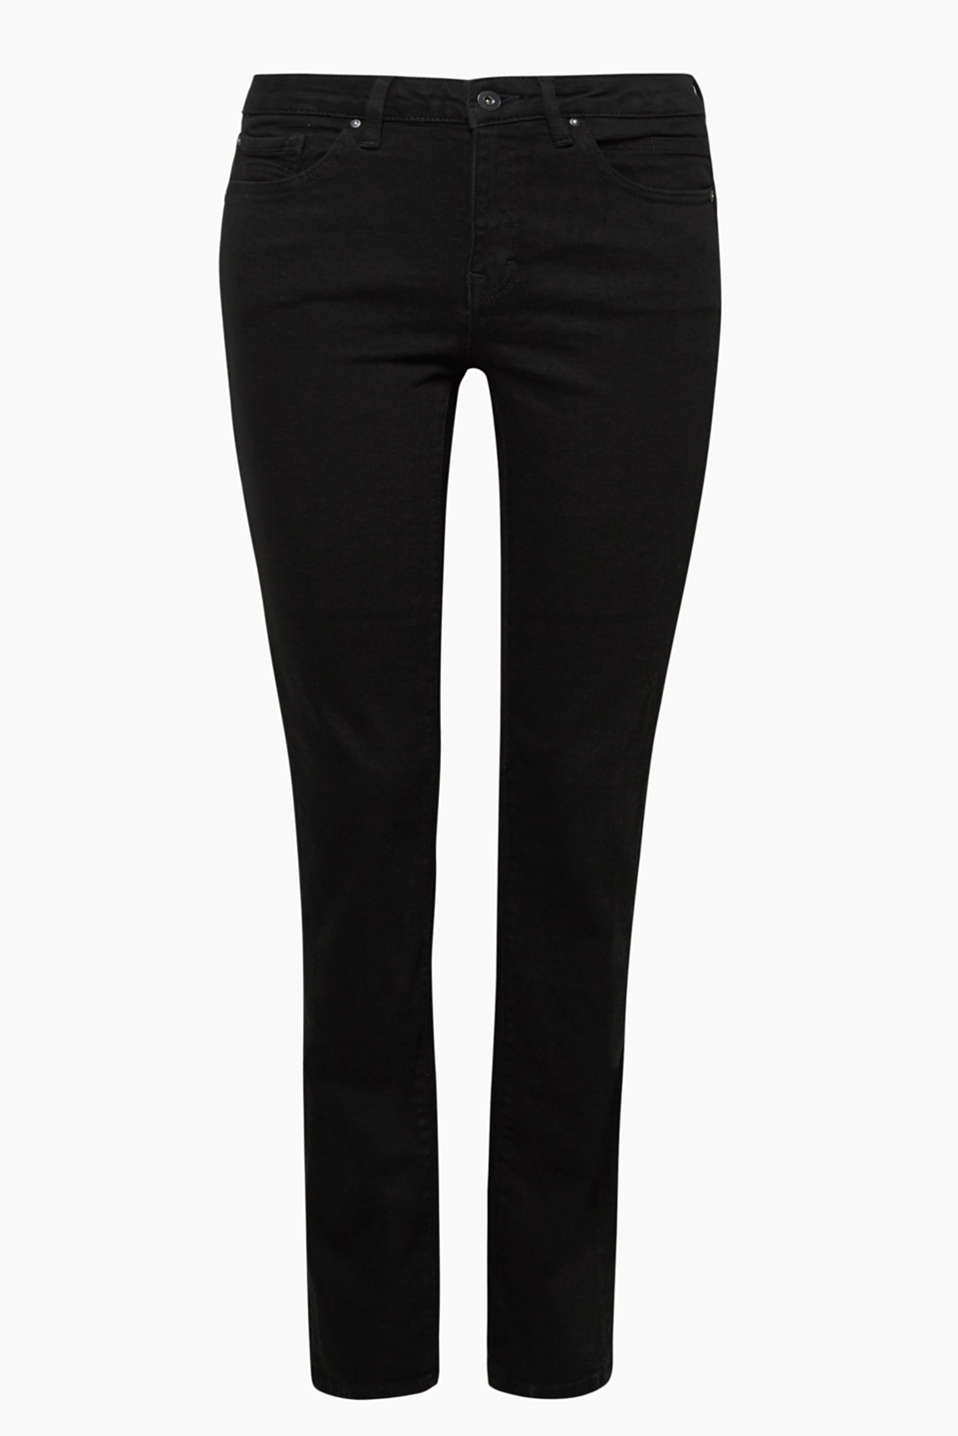 A favourite style for lots of looks: deep black denim jeans in a straight five pocket cut with button-fastening flap pockets.